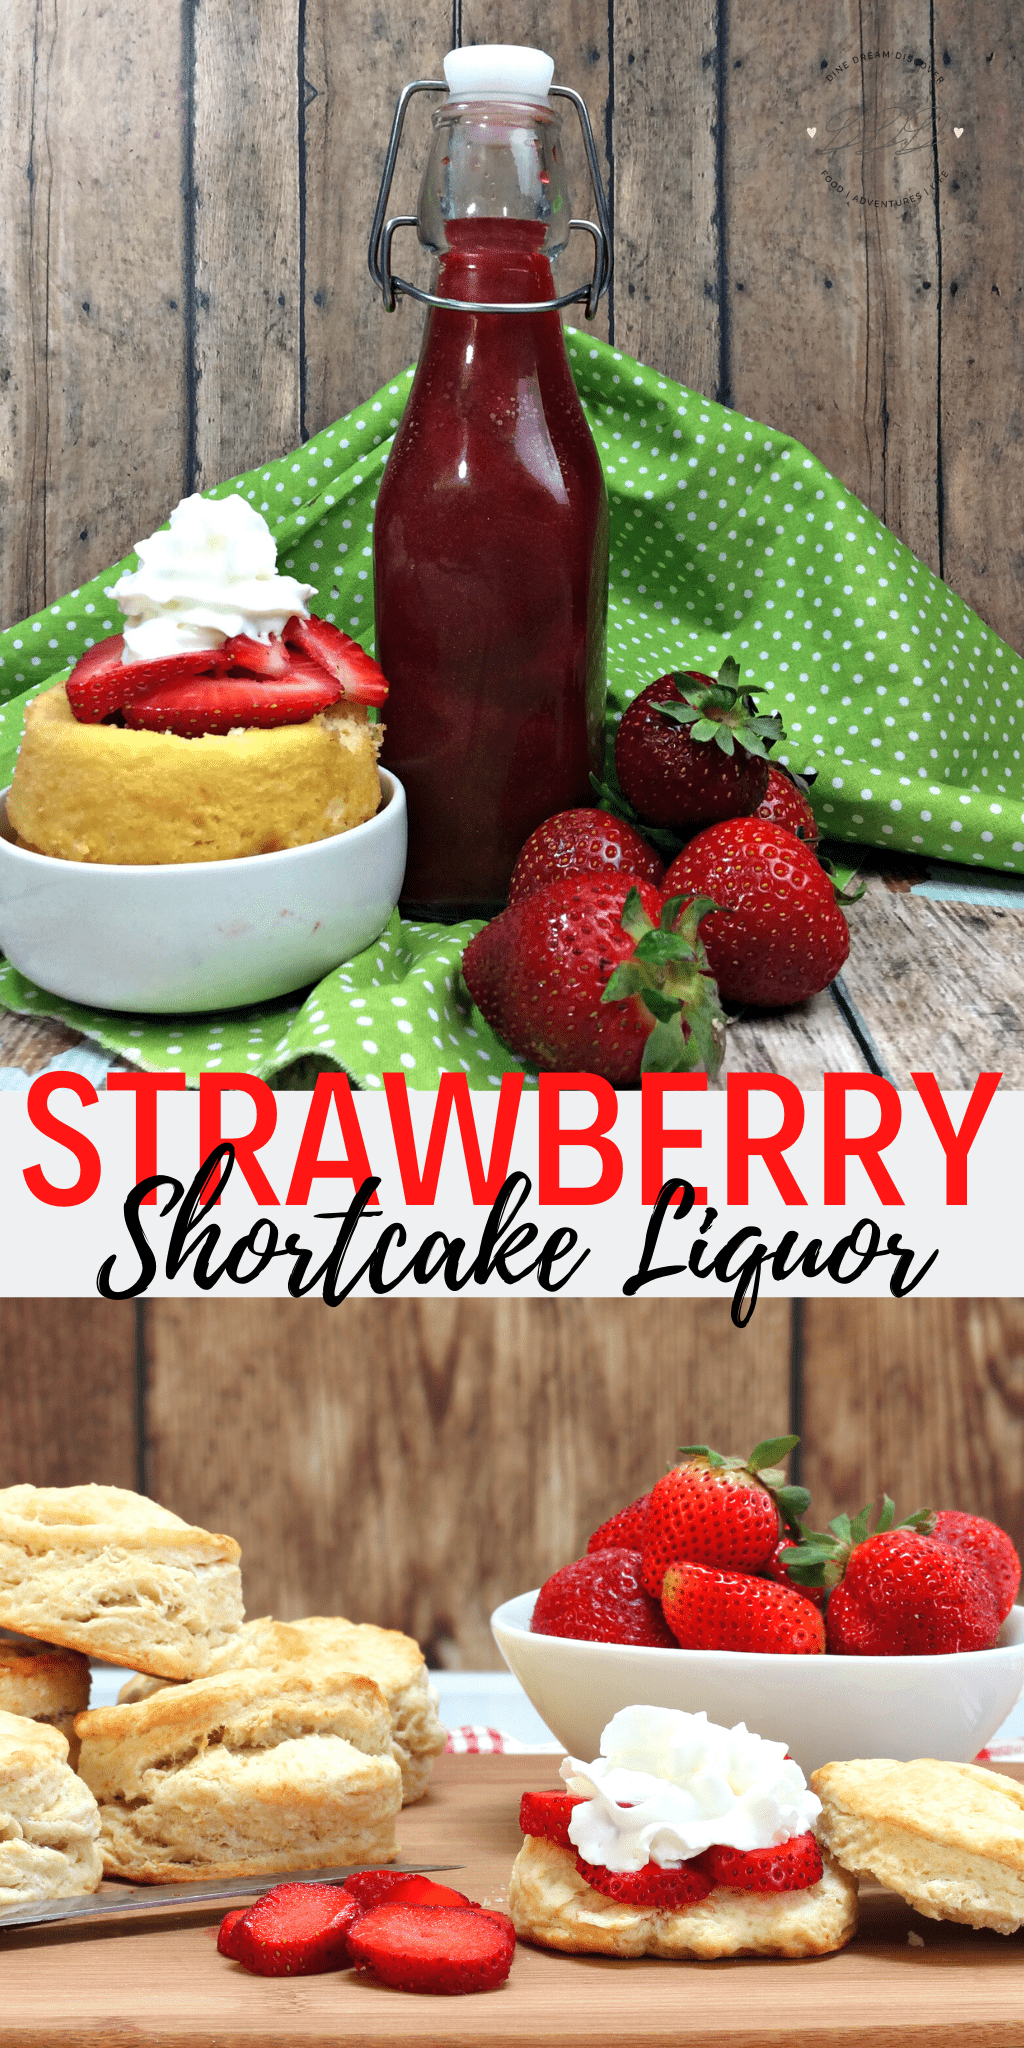 Strawberry Shortcake Liquor